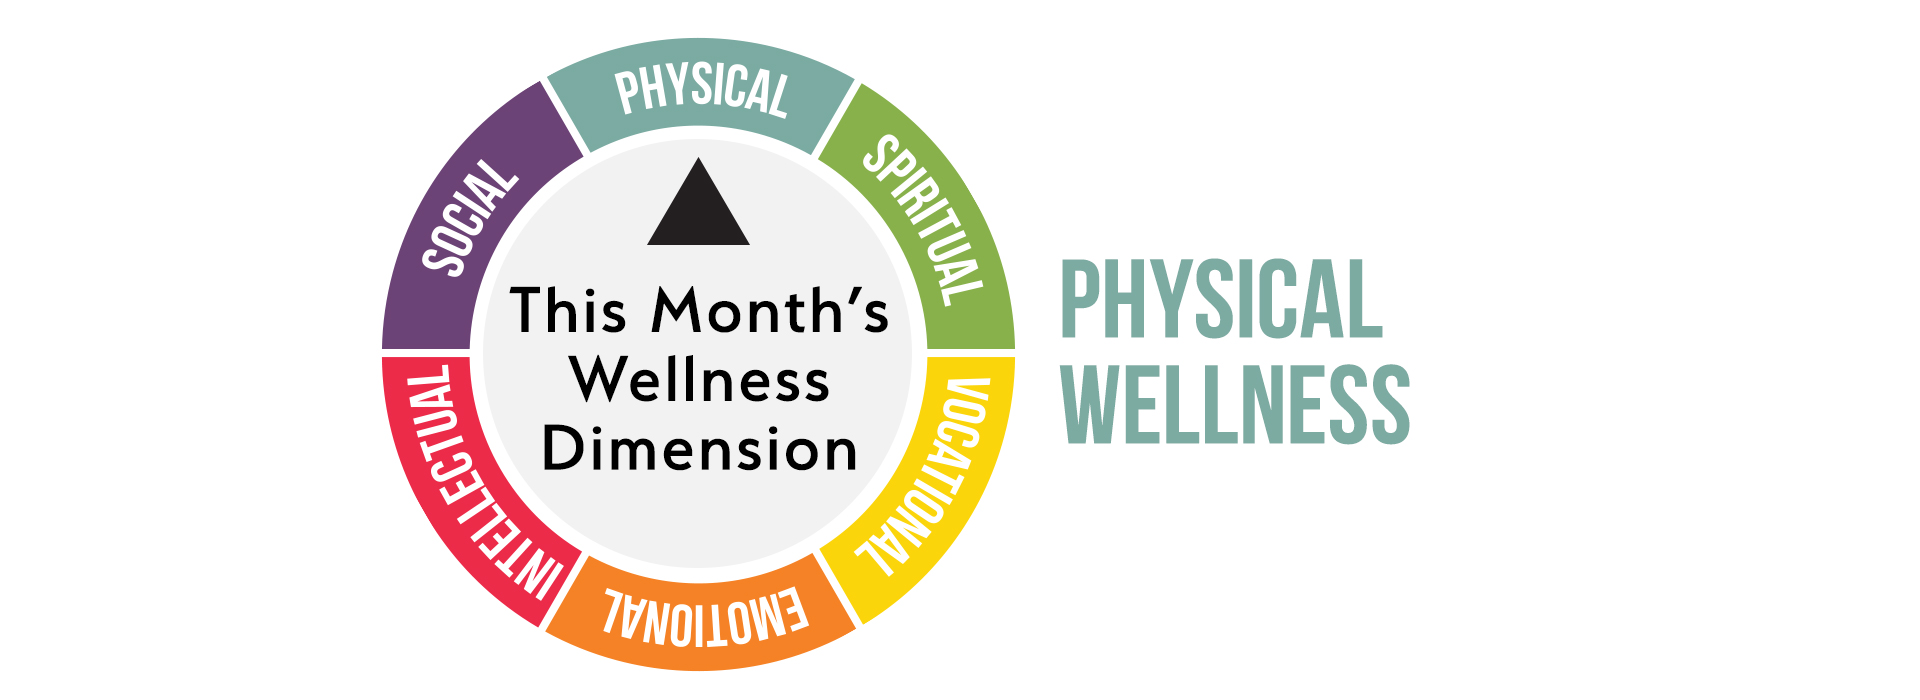 example of physical health dimension